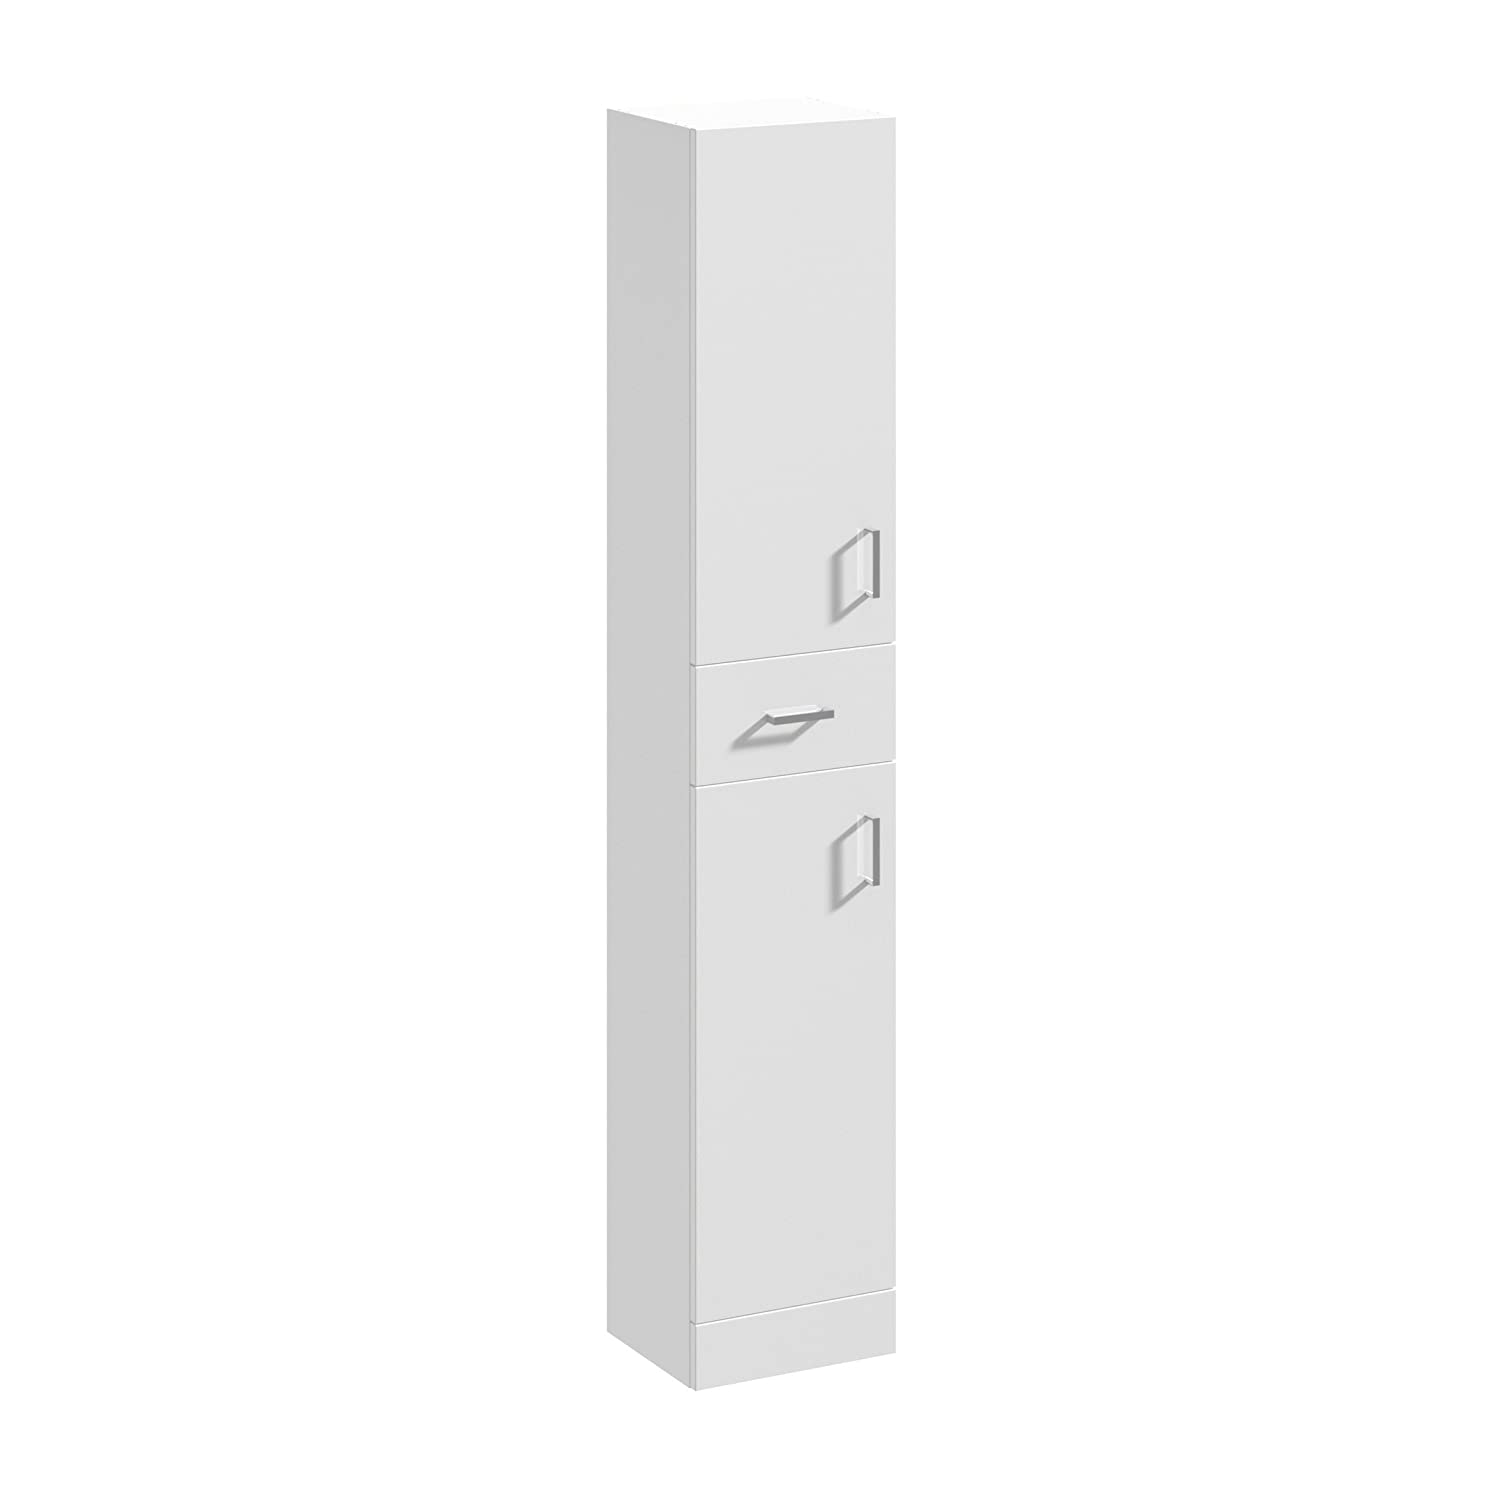 Home Standard Floe Classic White Gloss 350mm x 300mm Floor Standing Tall Unit